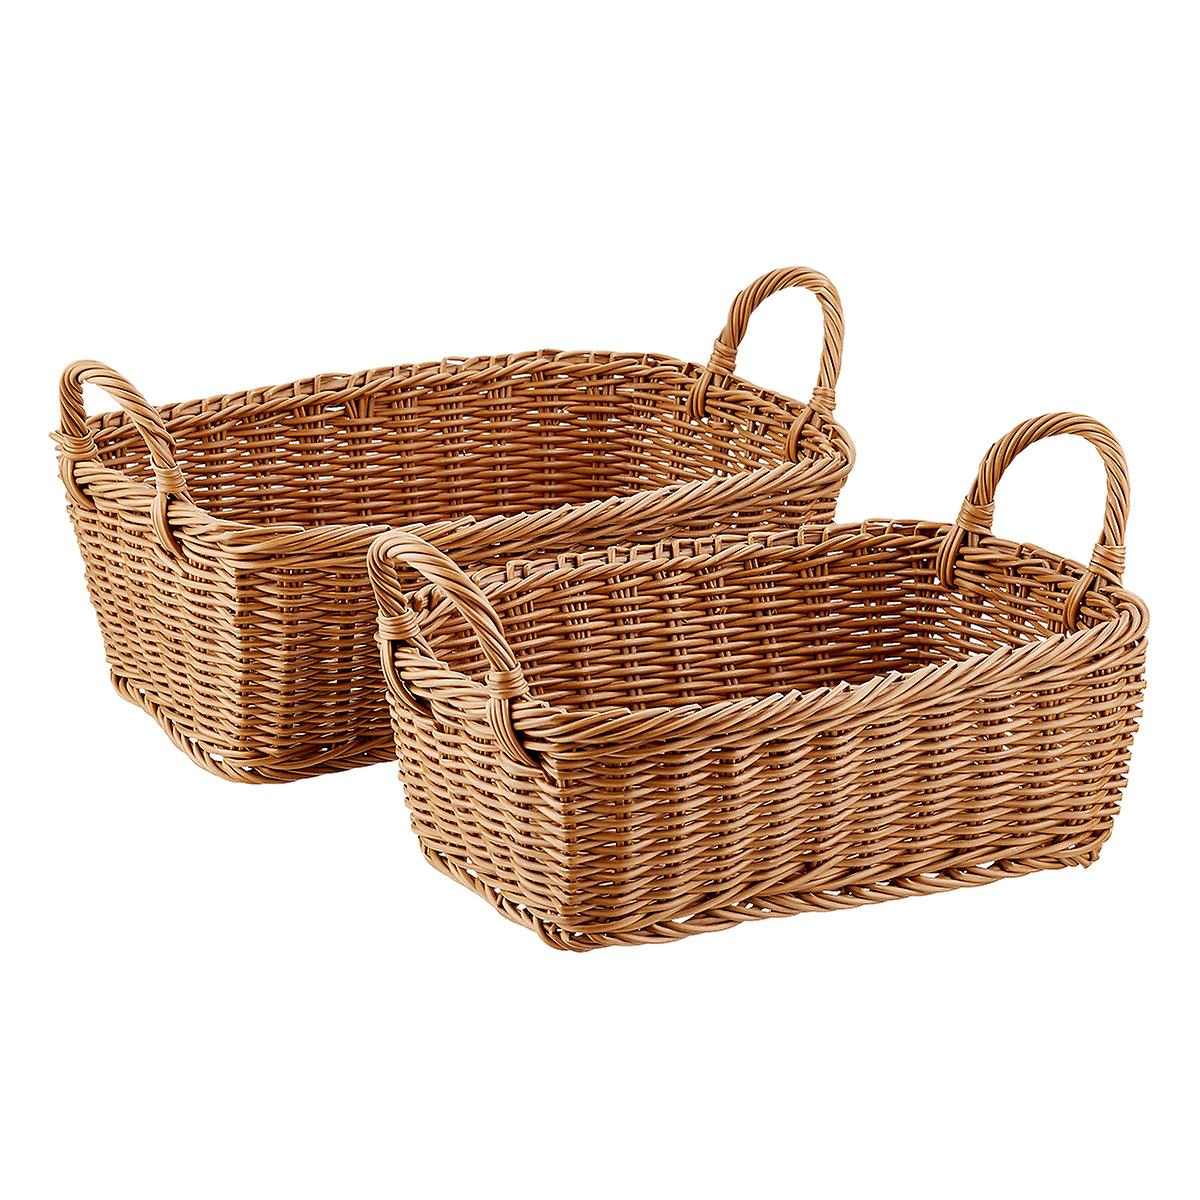 Willow Rectangular Wicker Storage Baskets with Handles